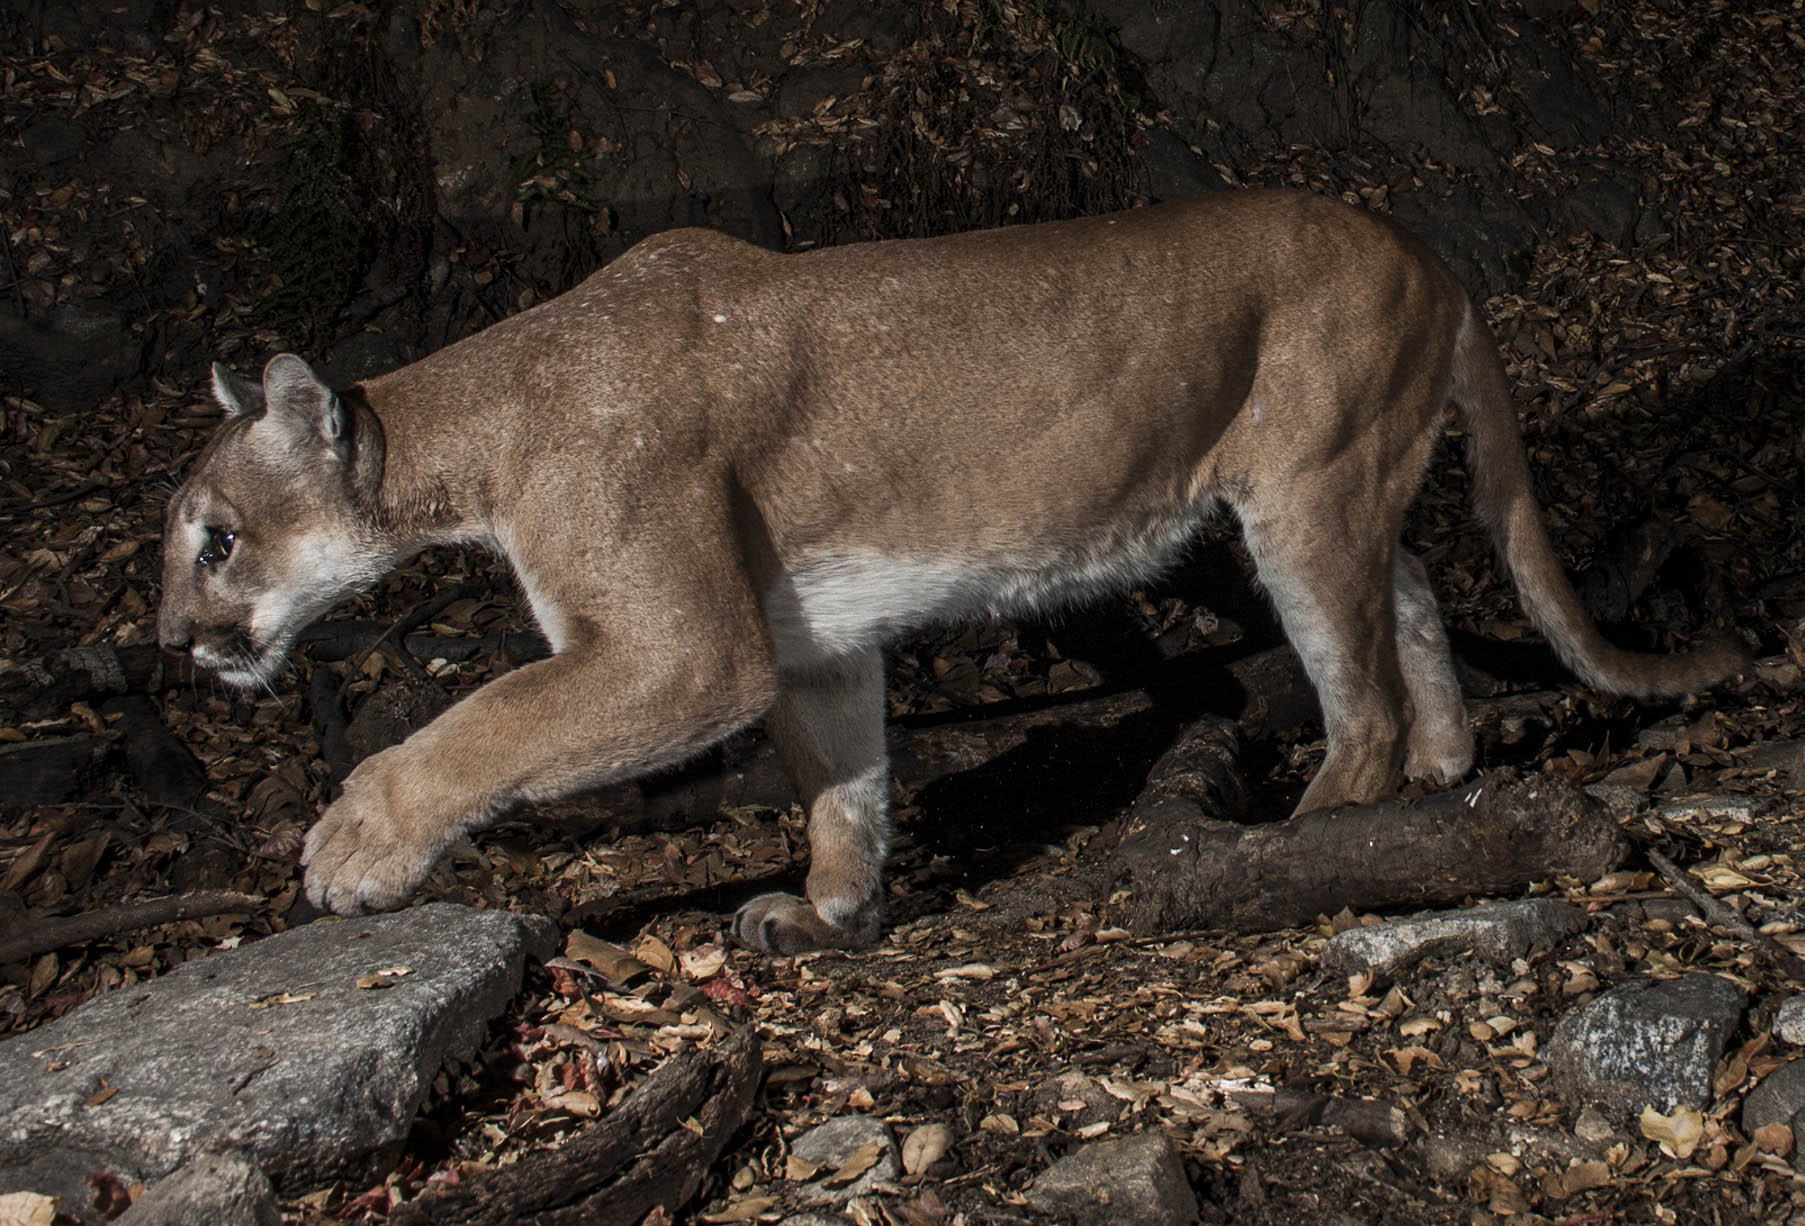 Cougars in my area